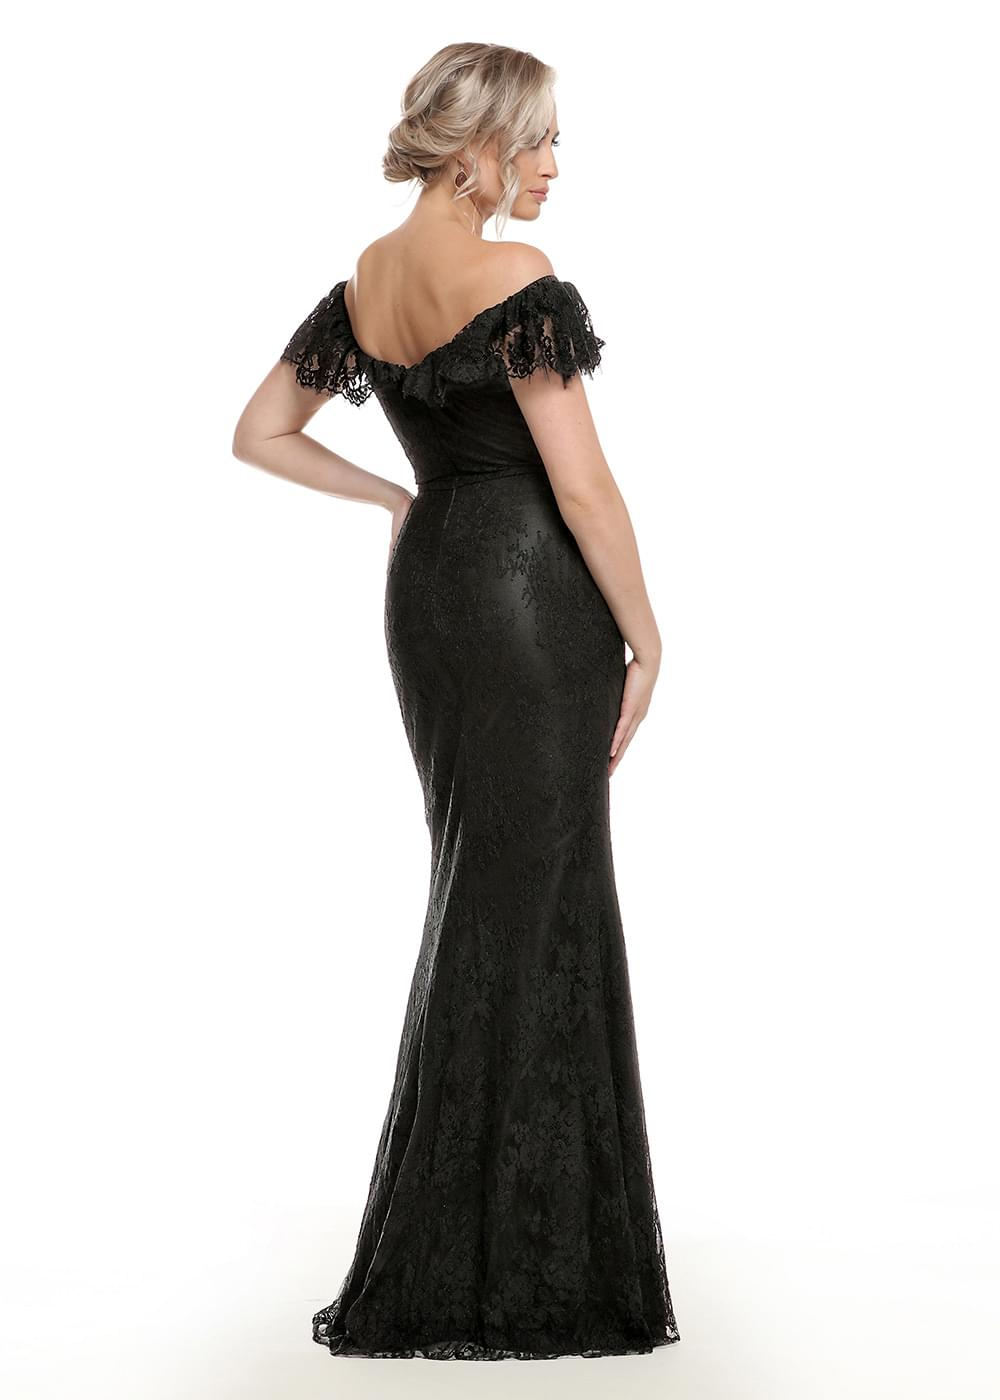 80134 Black Dresses By Ashdon